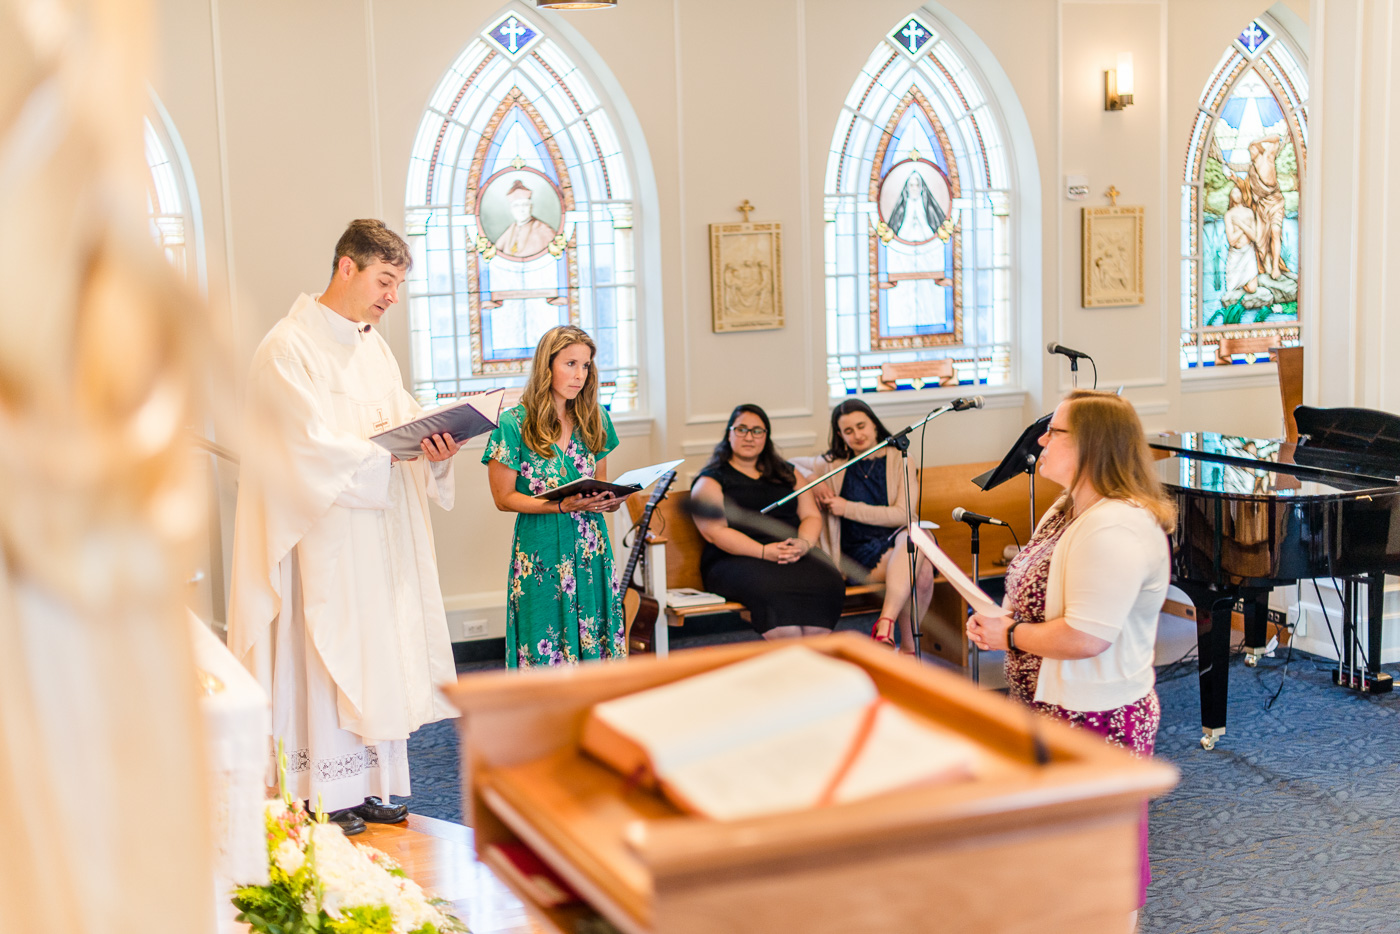 Emily-Annette-Photography-Catholic-Consecrated-Commitment-Mass-Event-Diocese-Arlington-Fairfax-Photographer-Youth-Apostles-August-2018-05.jpg